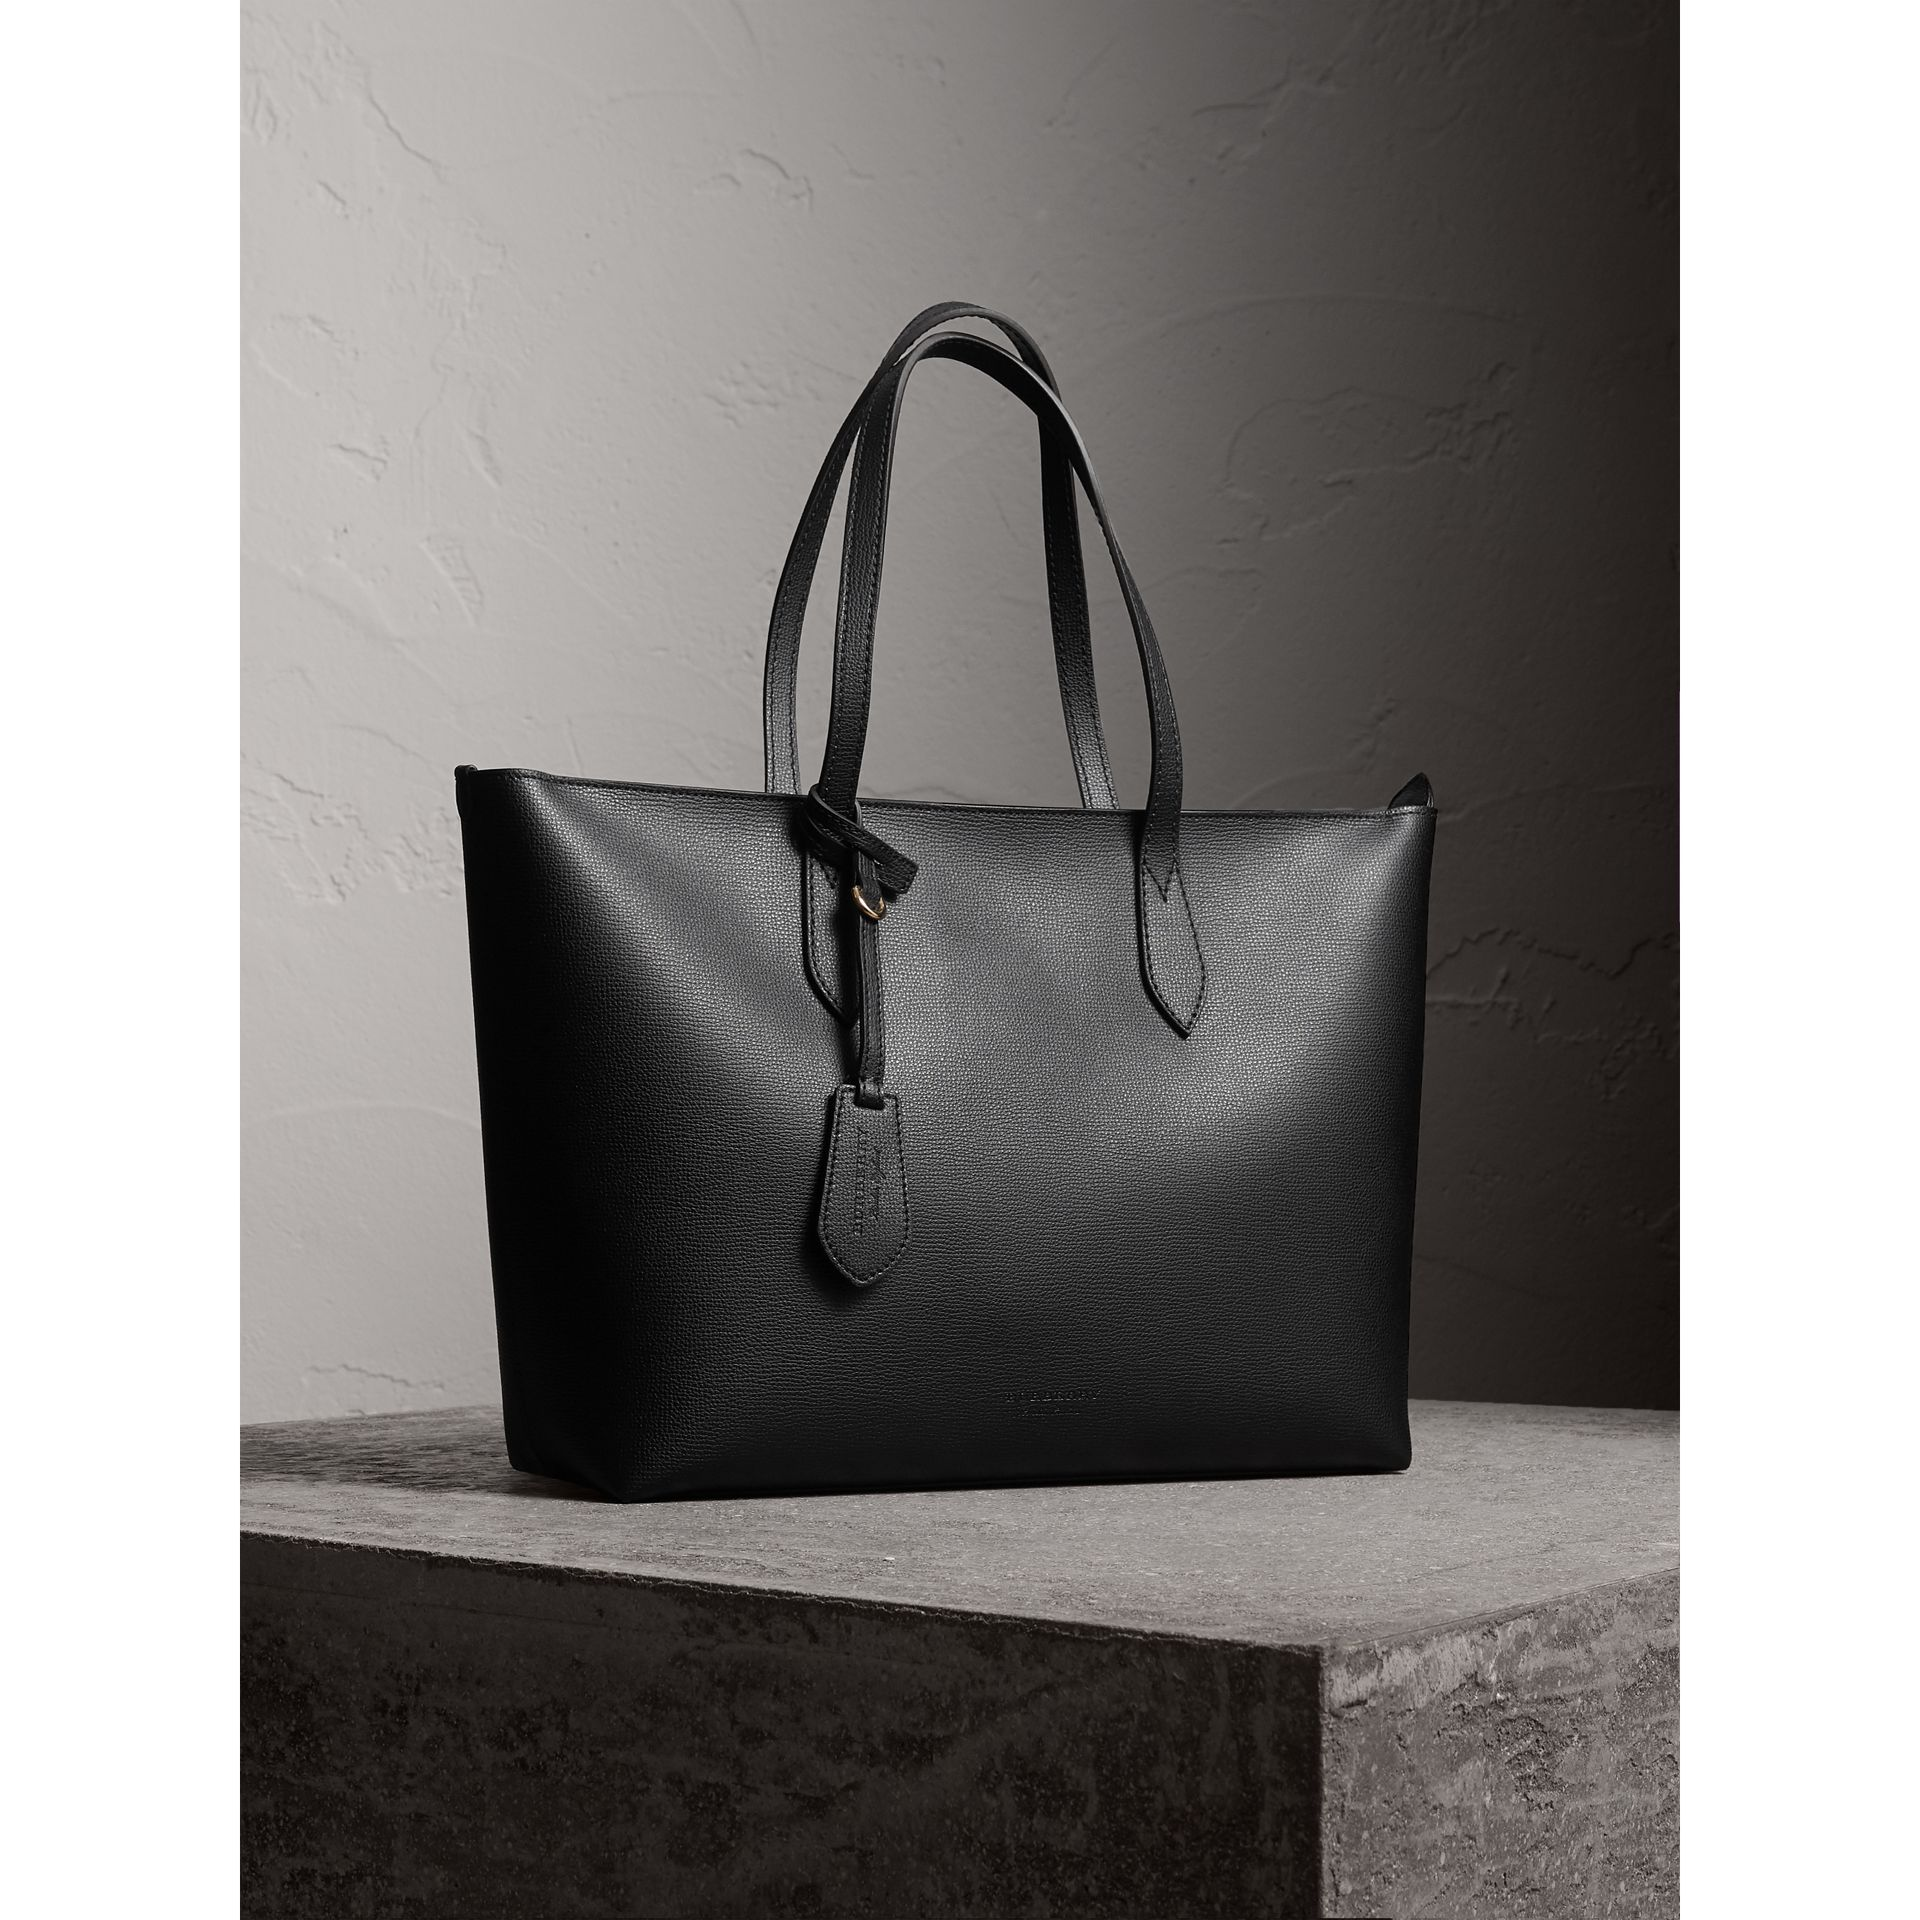 Medium Coated Leather Tote in Black - Women | Burberry United Kingdom - gallery image 6